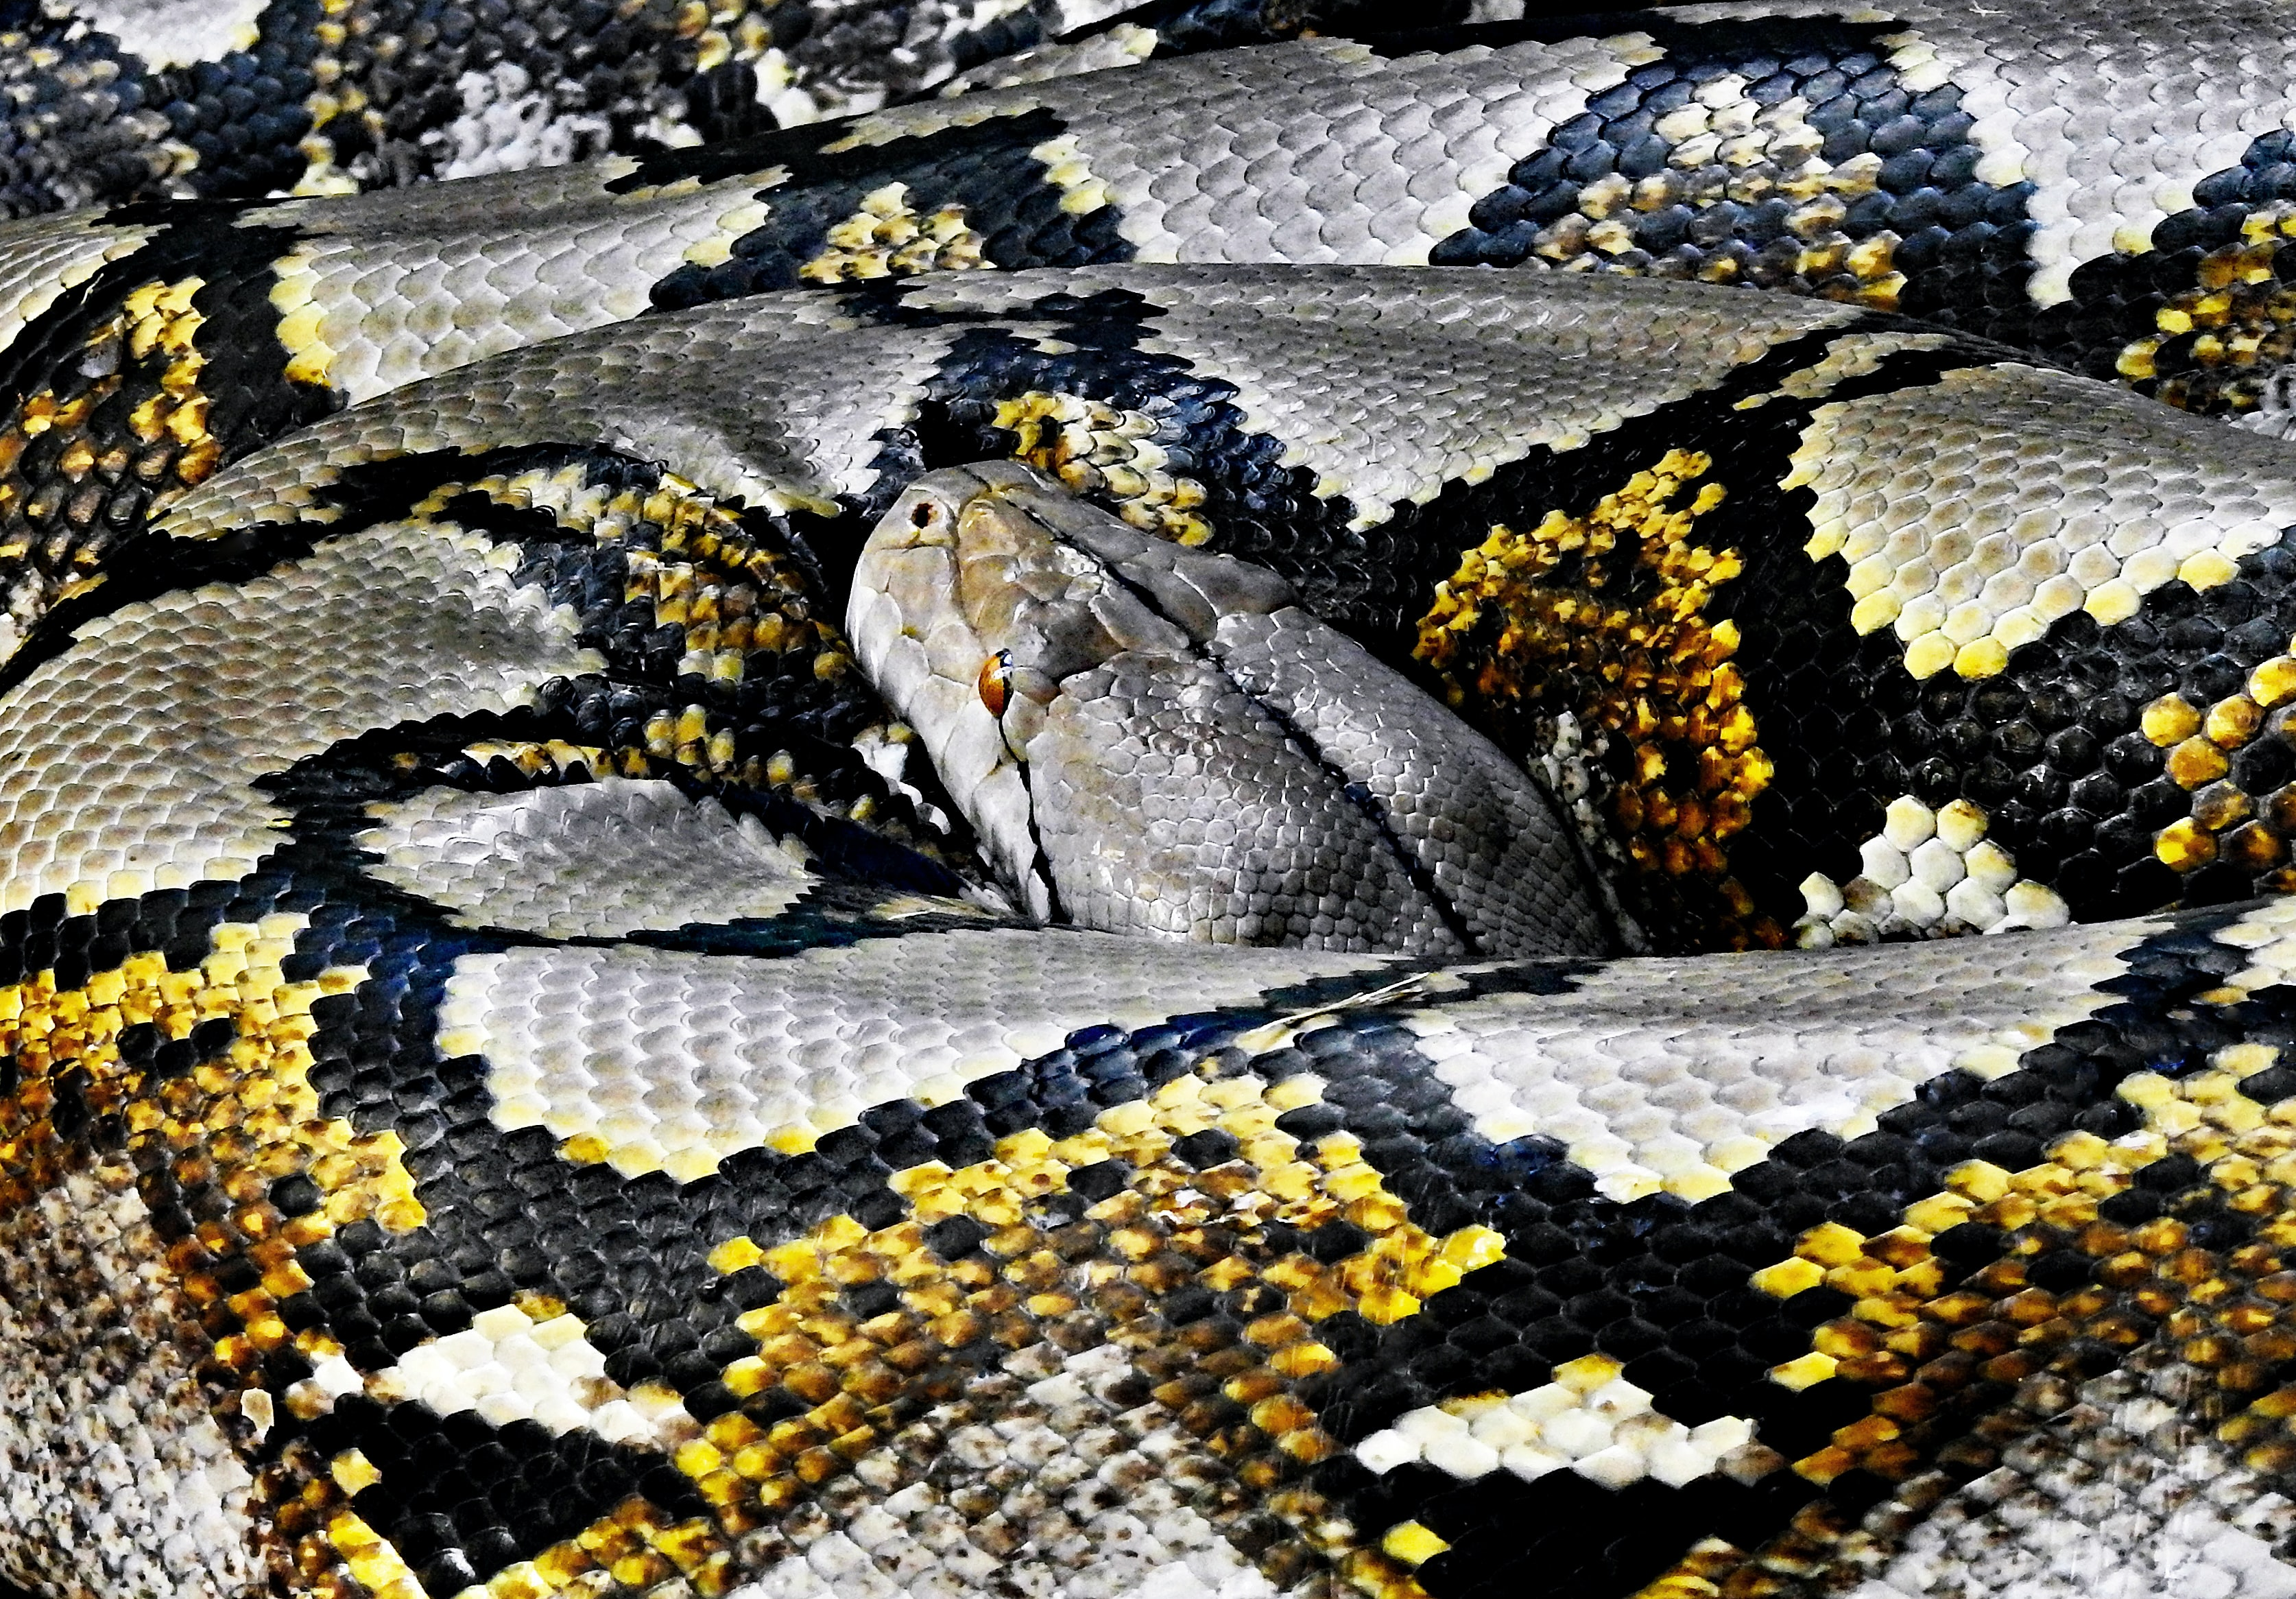 python resting its head on body